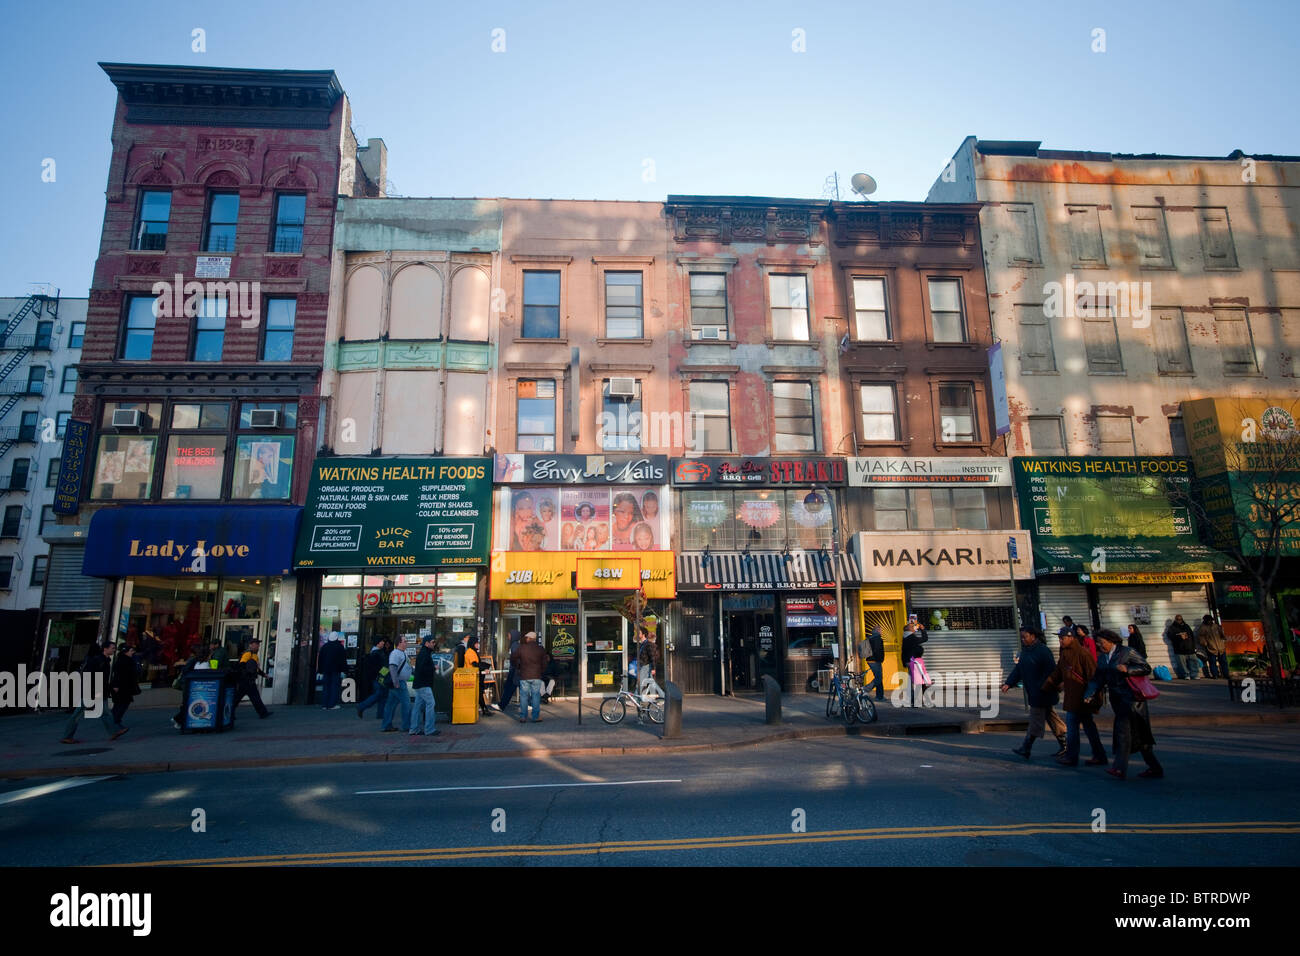 125th street clothing stores